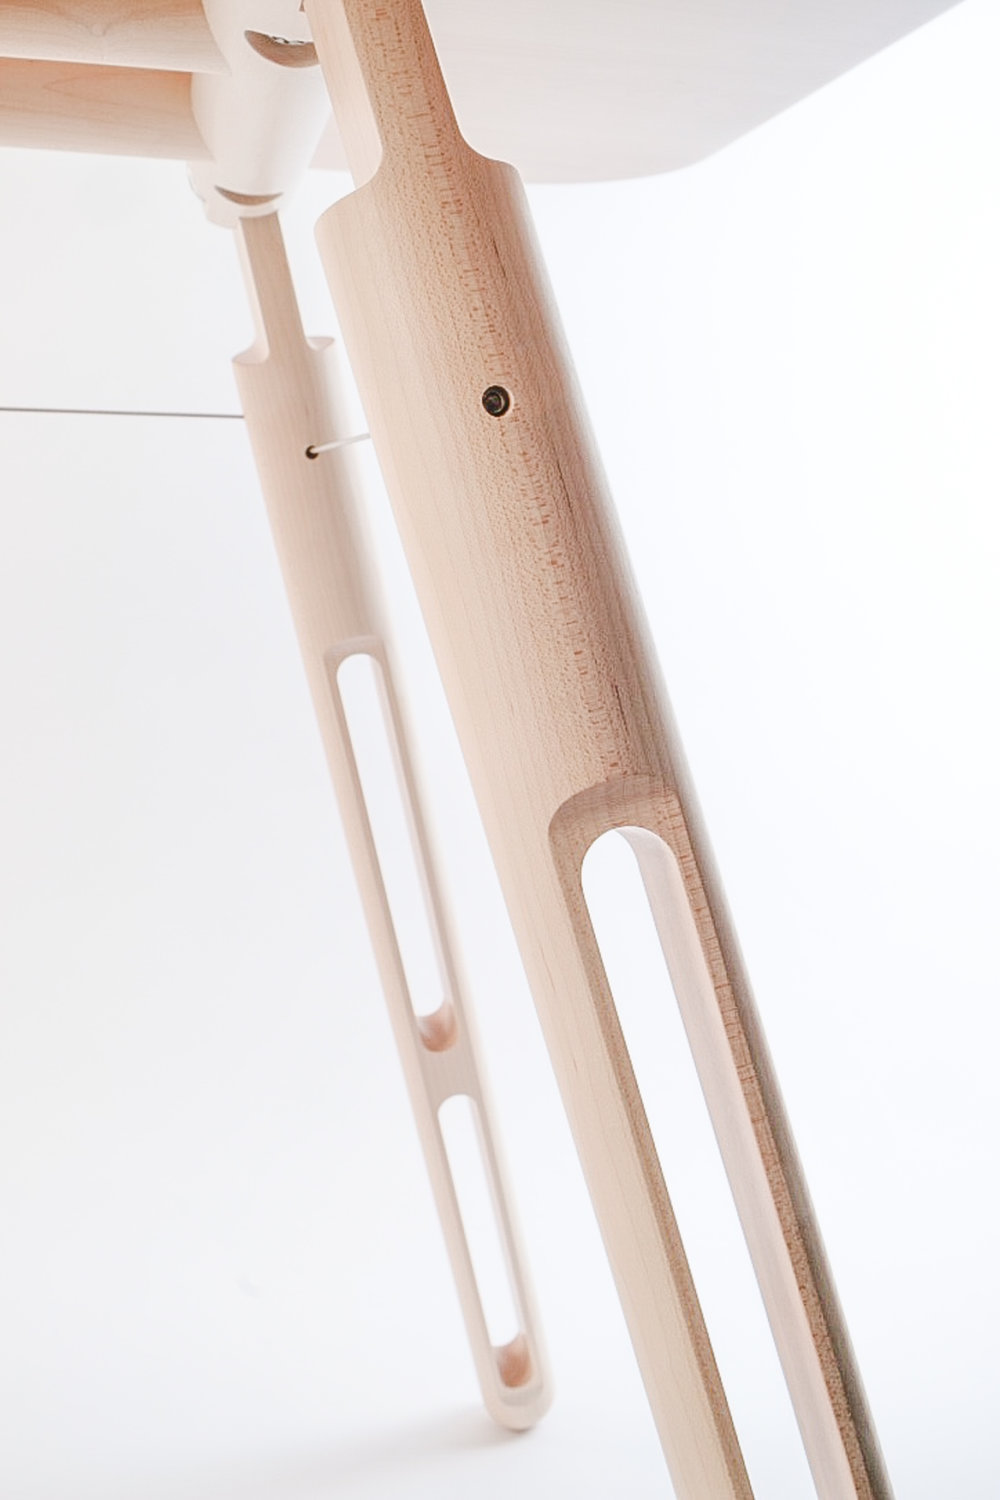 Phloem Desk Detail 3.jpg